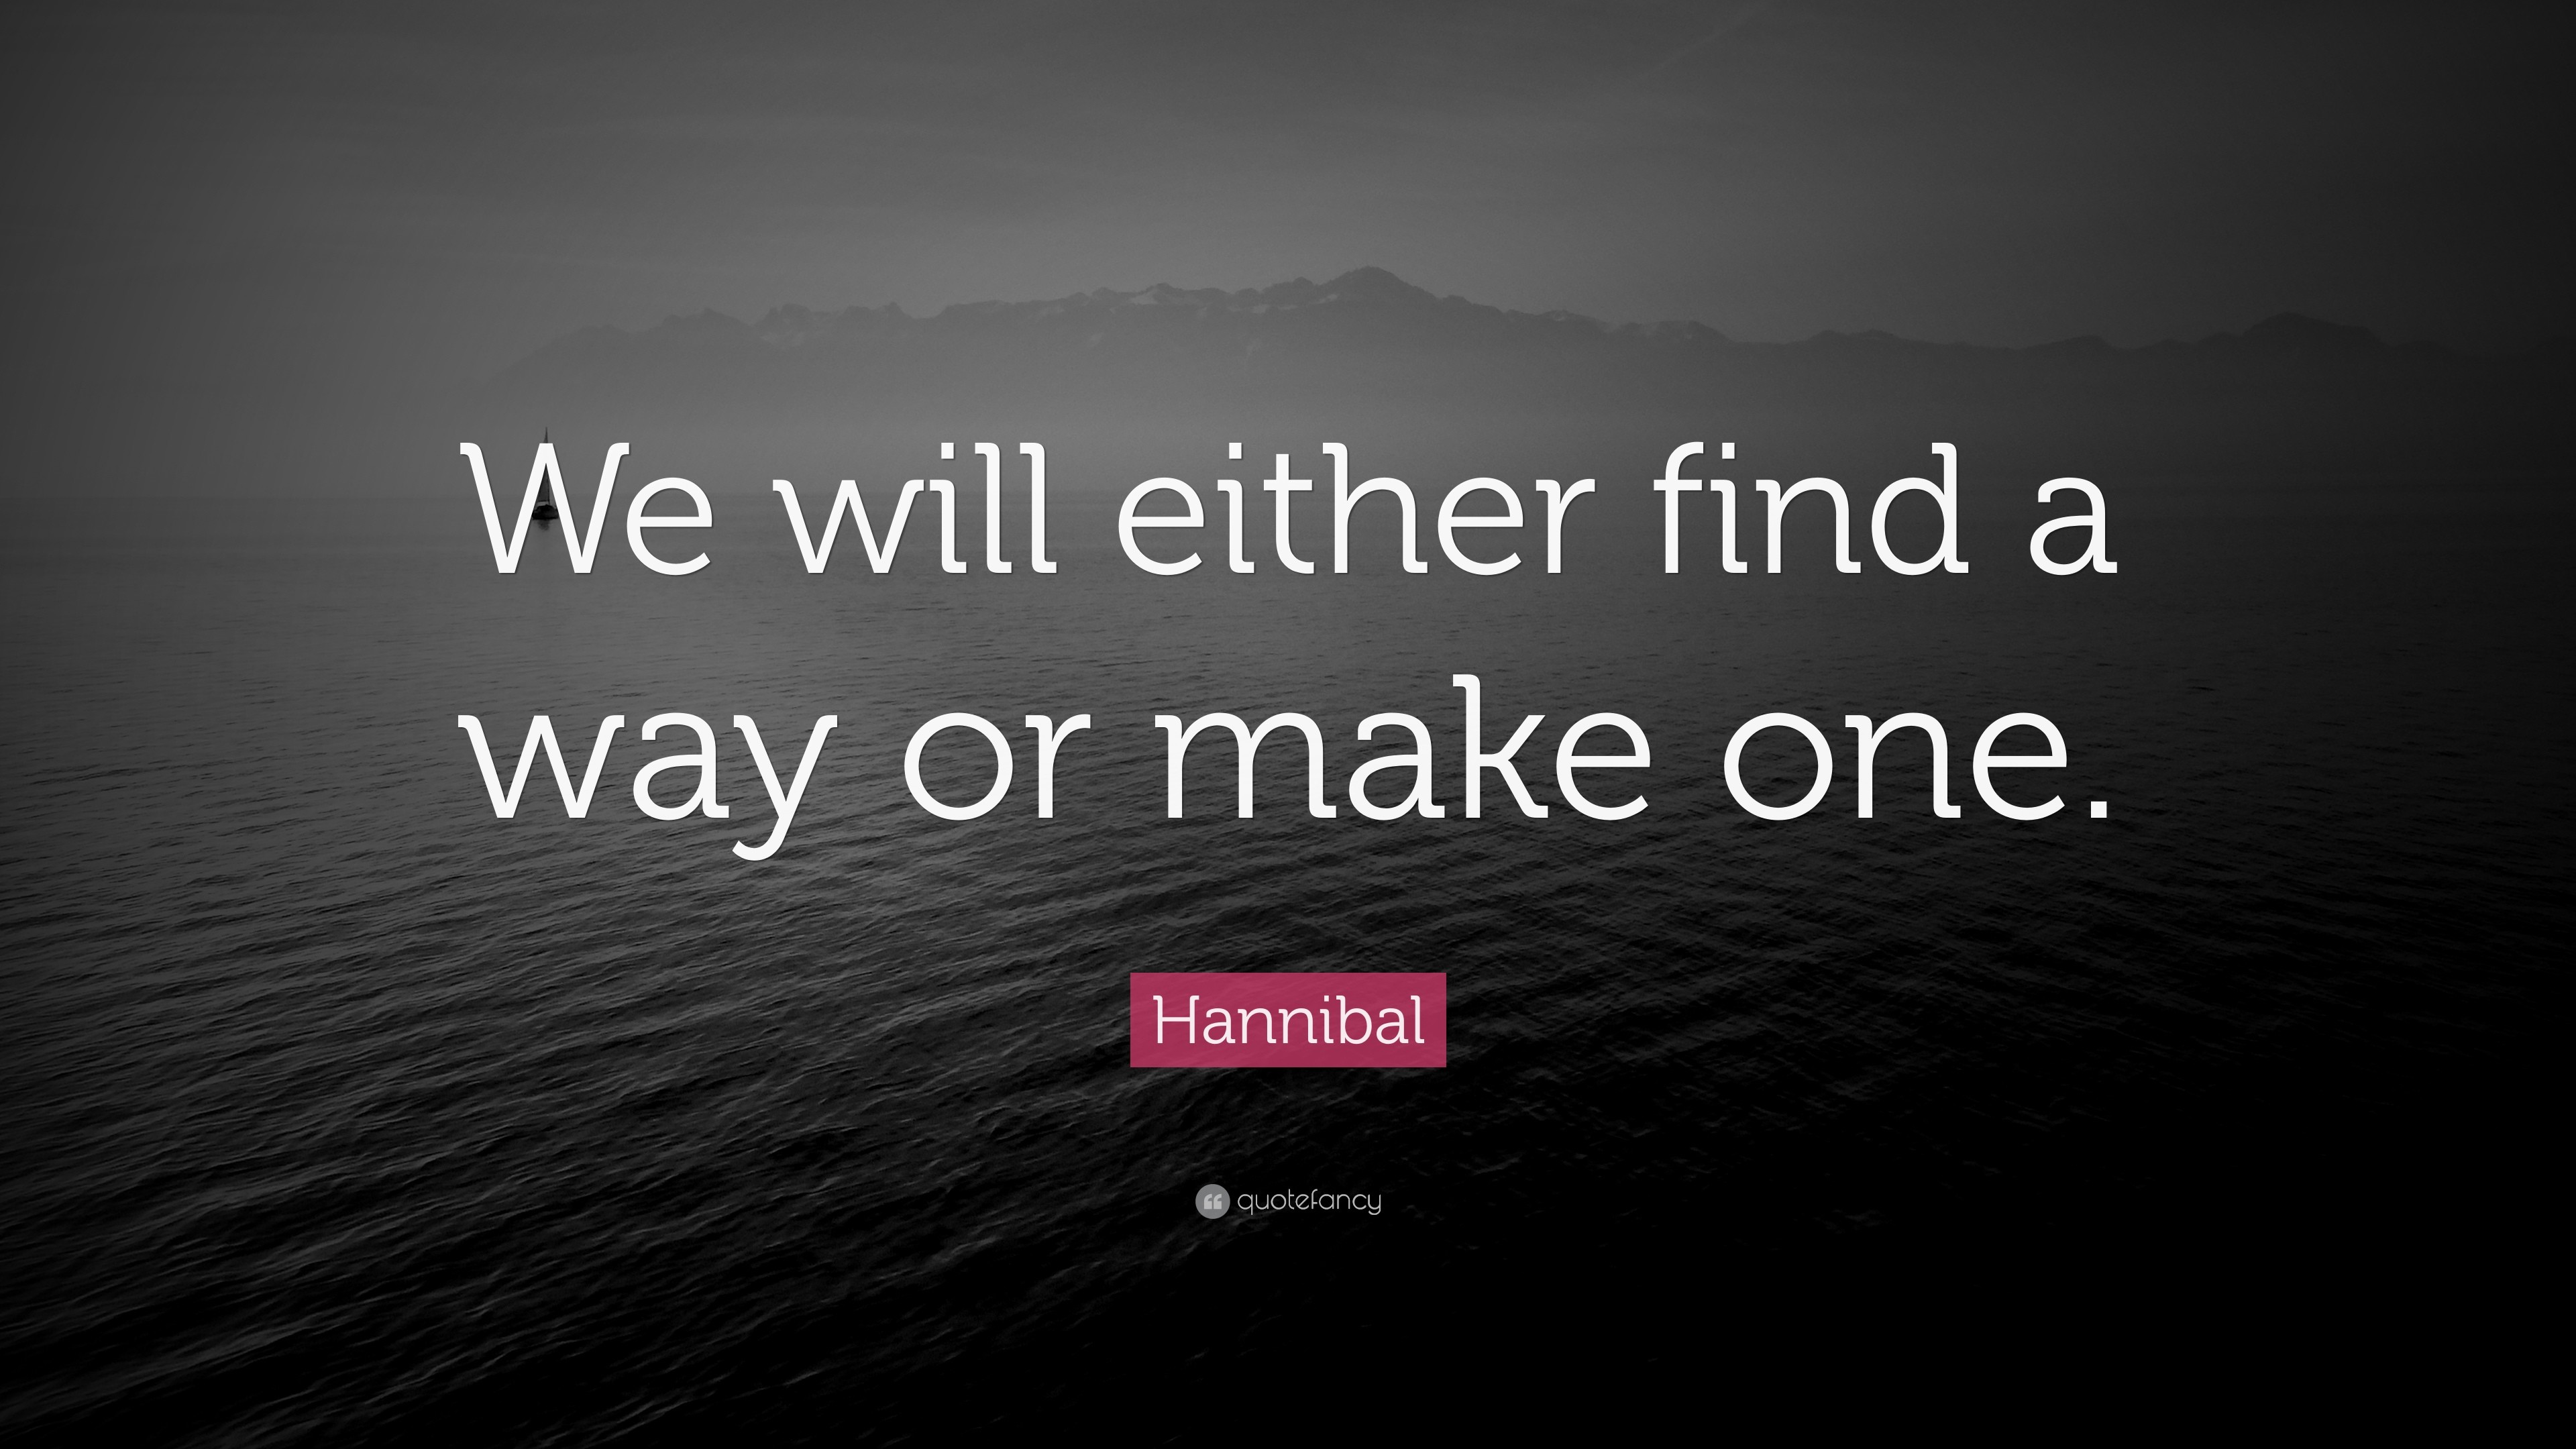 """Res: 3840x2160, Hannibal Quote: """"We will either find a way or make one."""""""